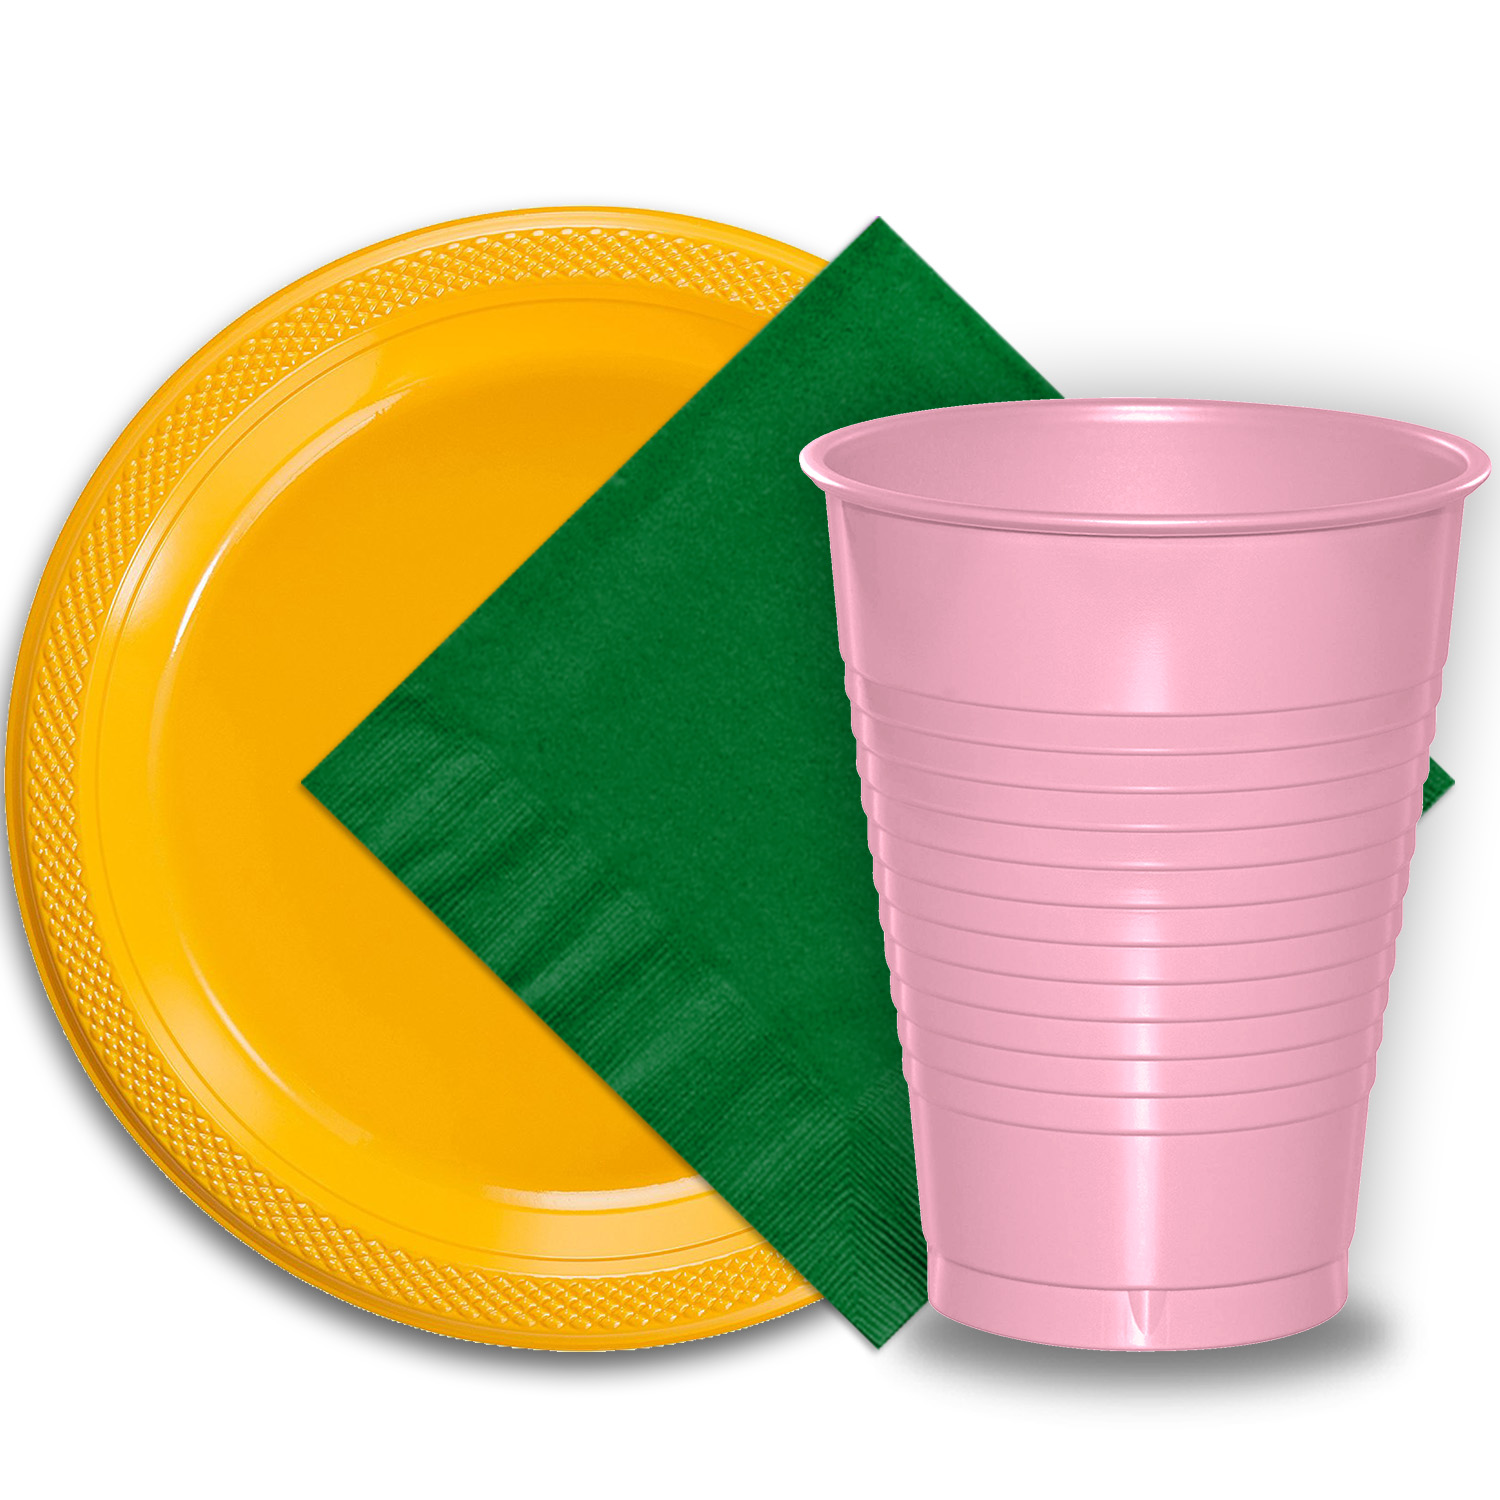 "50 Yellow Plastic Plates (9""), 50 Pink Plastic Cups (12 oz.), and 50 Emerald Green Paper Napkins, Dazzelling Colored Disposable Party Supplies Tableware Set for Fifty Guests."